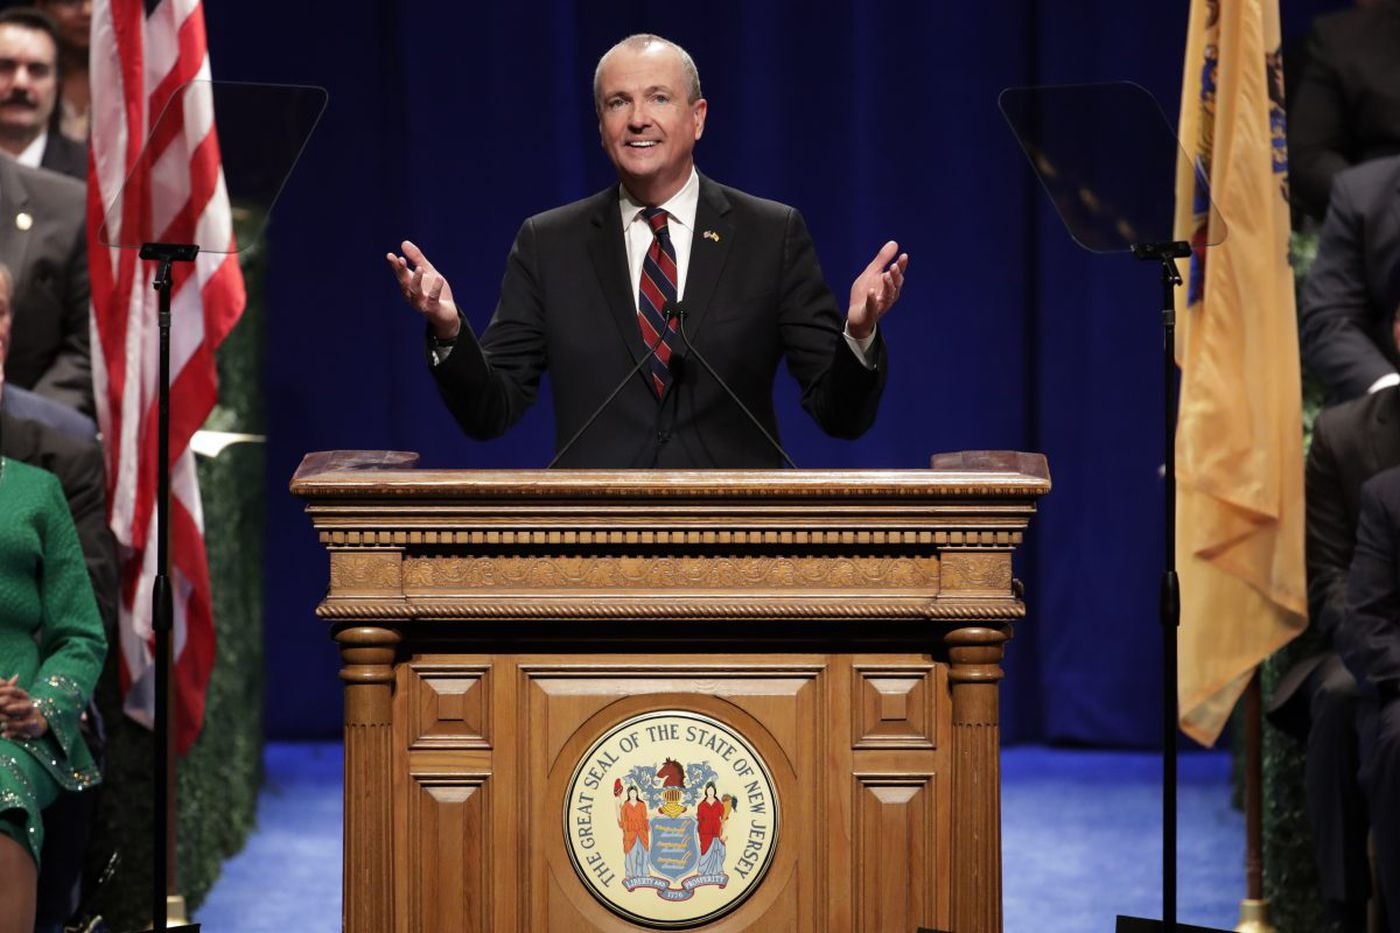 Memo to New Jersey's new Gov. Murphy | Editorial